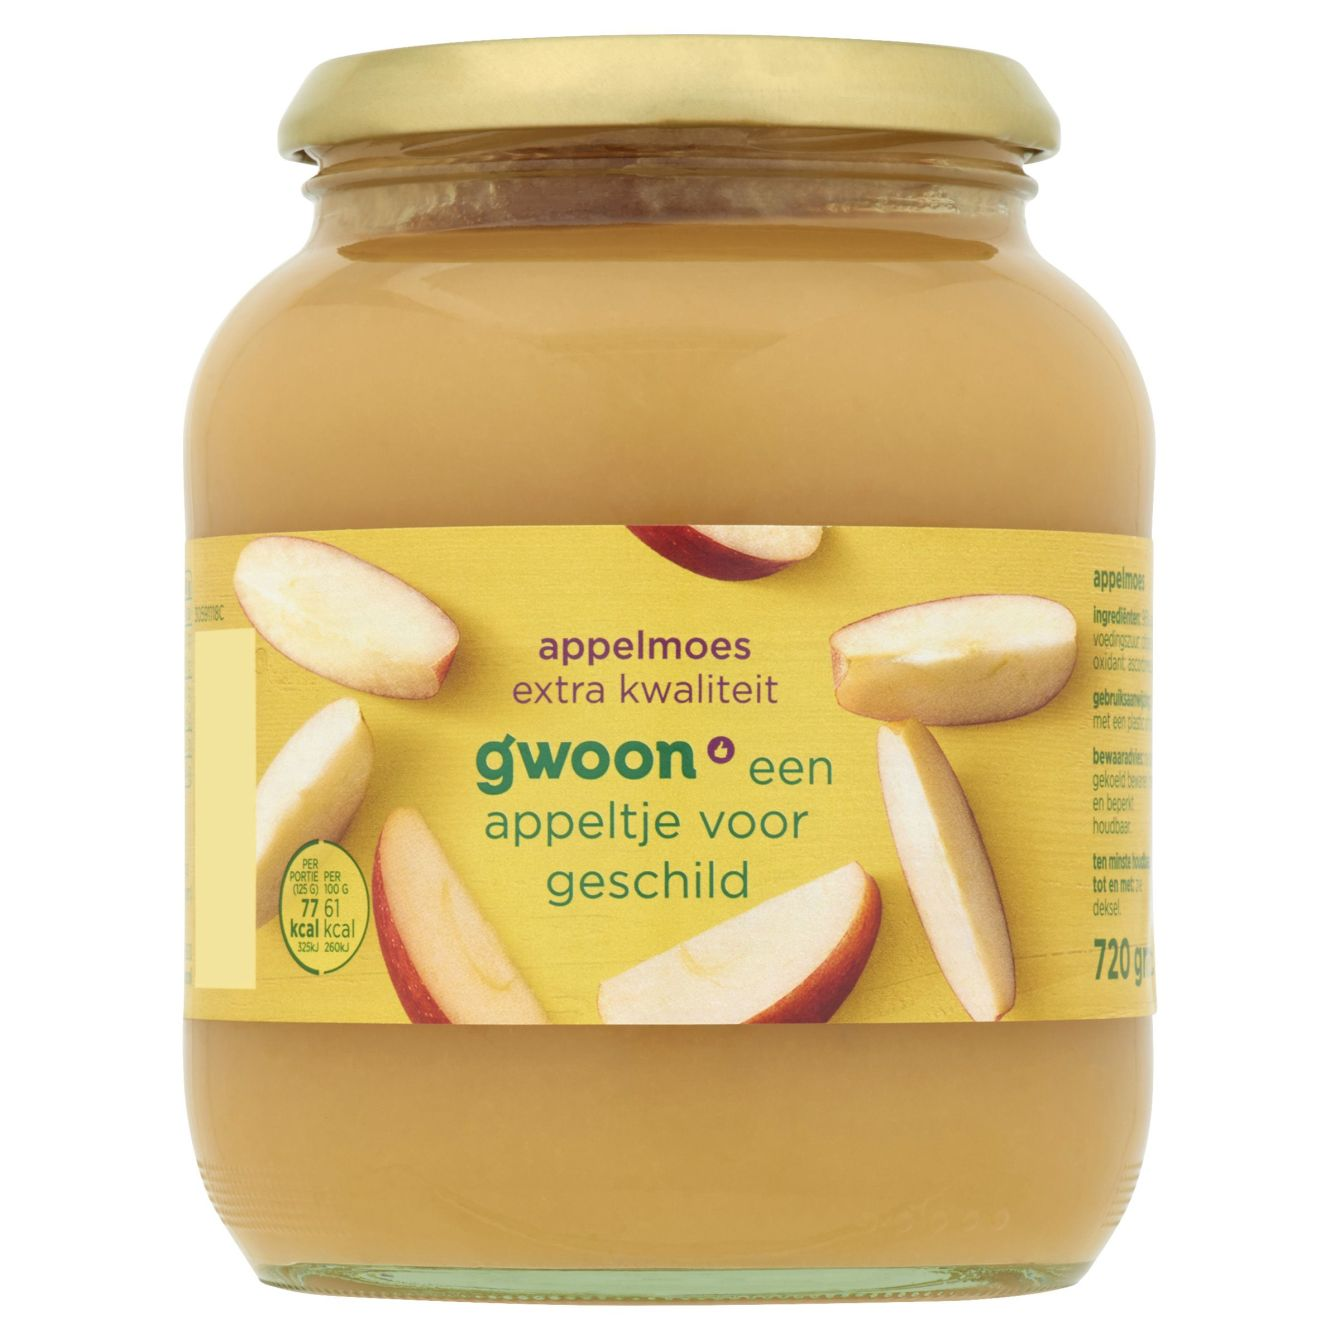 G'woon Appelmoes Extra Kwaliteit